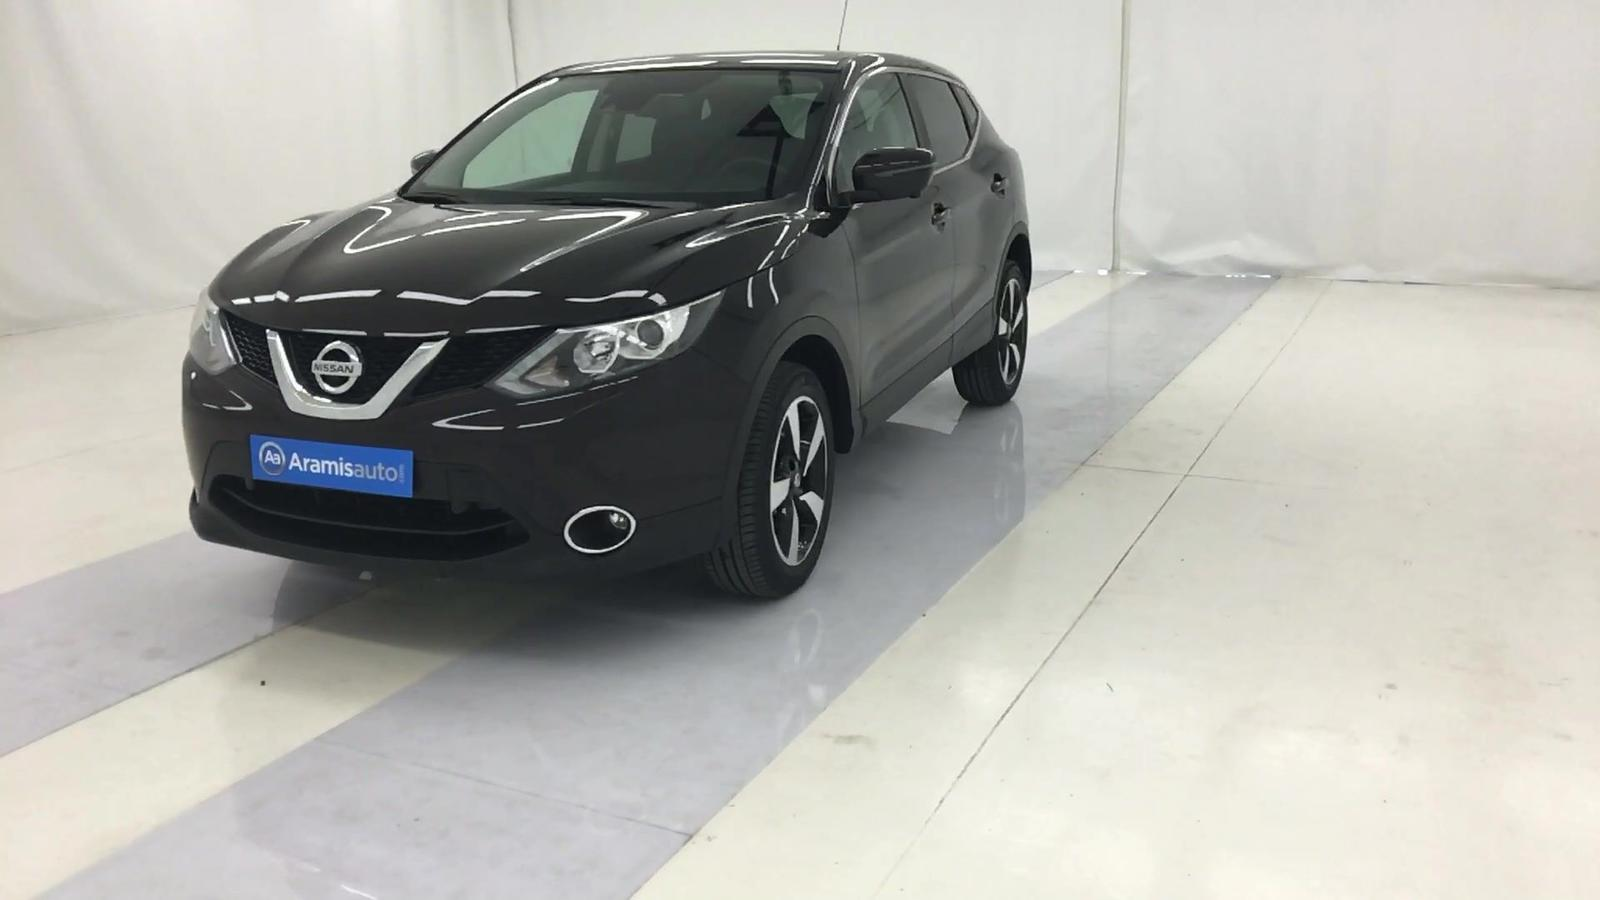 nissan qashqai 4x4 et suv 5 portes diesel 1 6 dci 130 all mode 4x4 i bo te manuelle. Black Bedroom Furniture Sets. Home Design Ideas